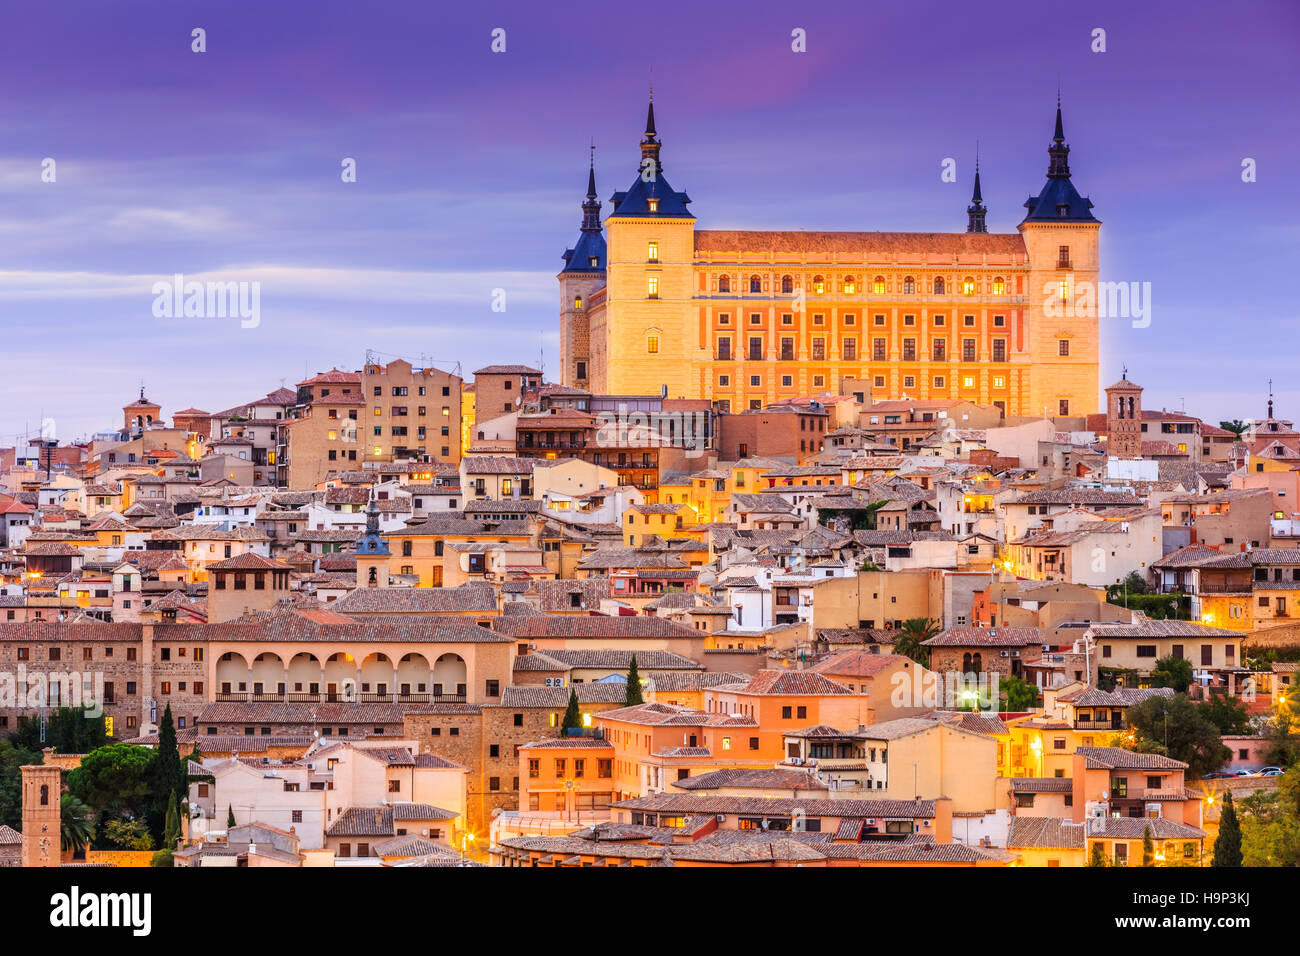 Toledo, Spain. Panoramic view of the old city and its Alcazar (Royal Palace). - Stock Image